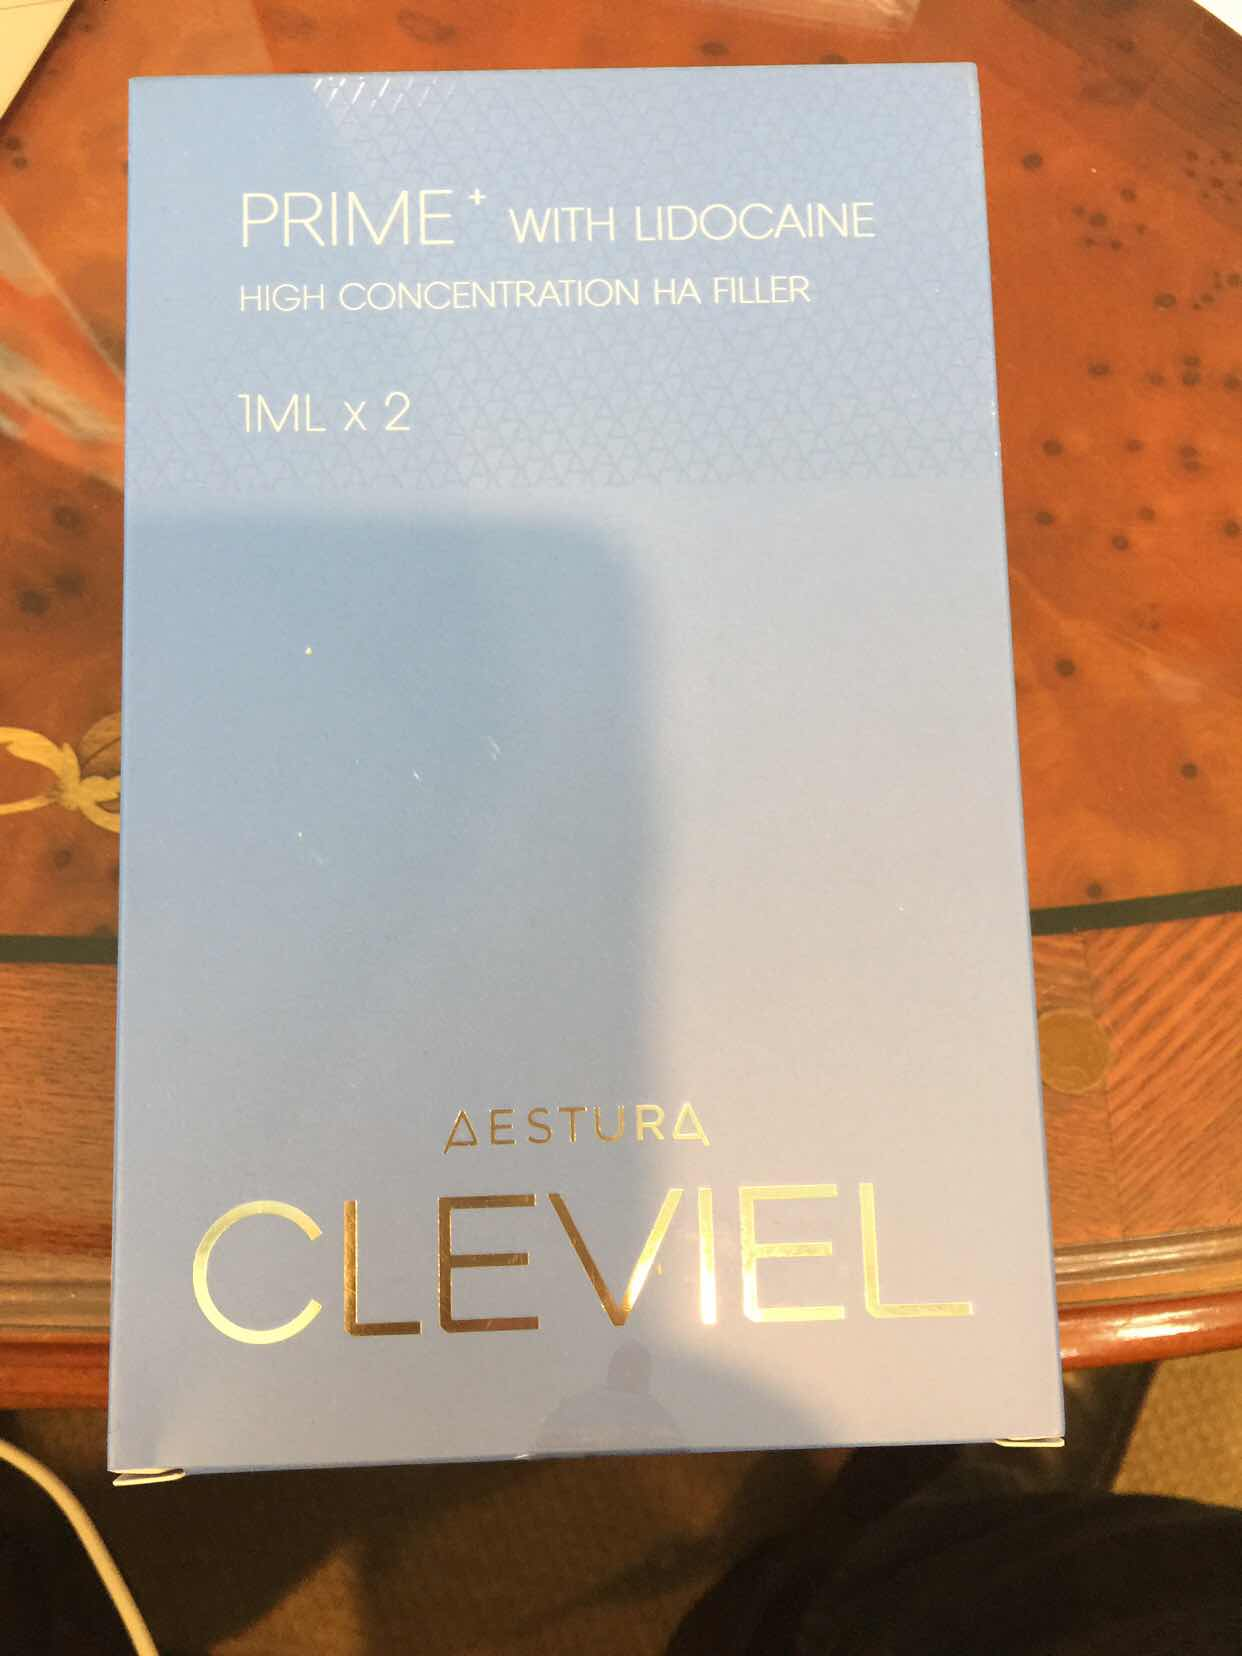 High Concentration Ha Filler Cleviel